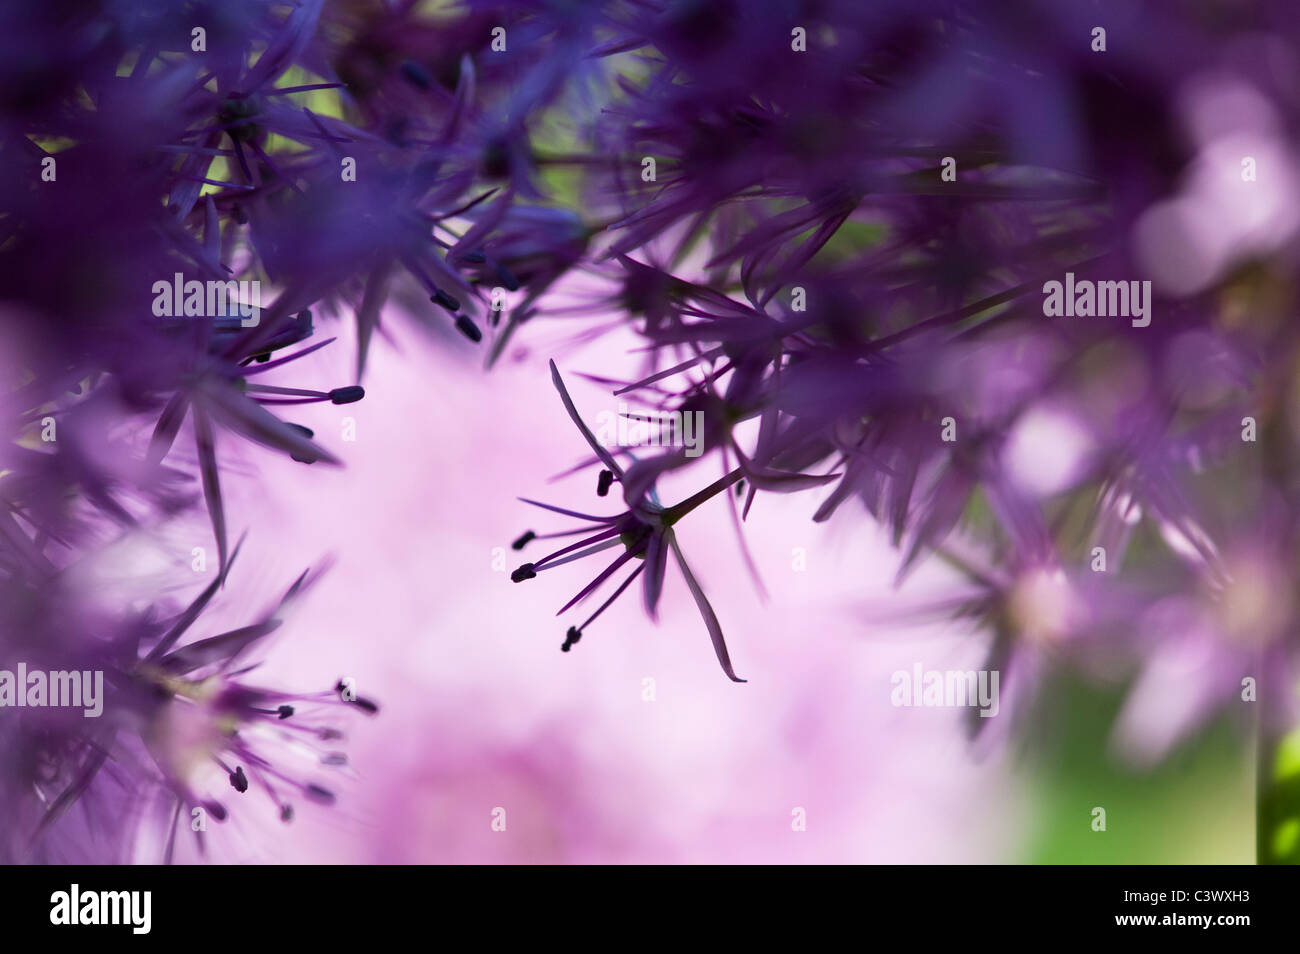 Allium purple sensation flower abstract - Stock Image